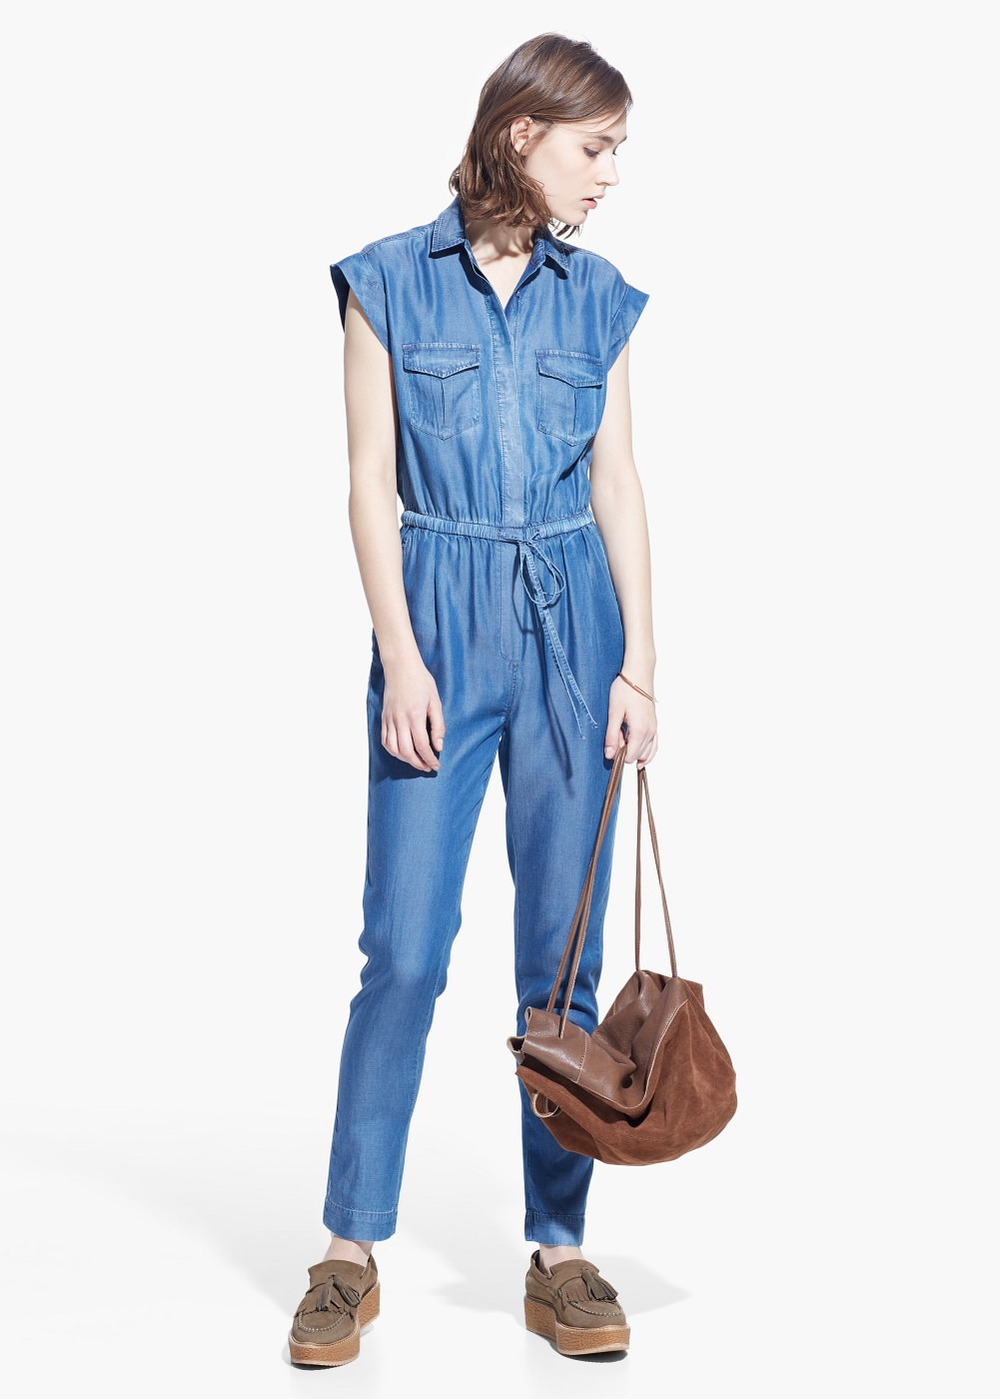 Soft Fabric Jump Suit ,  $99.99